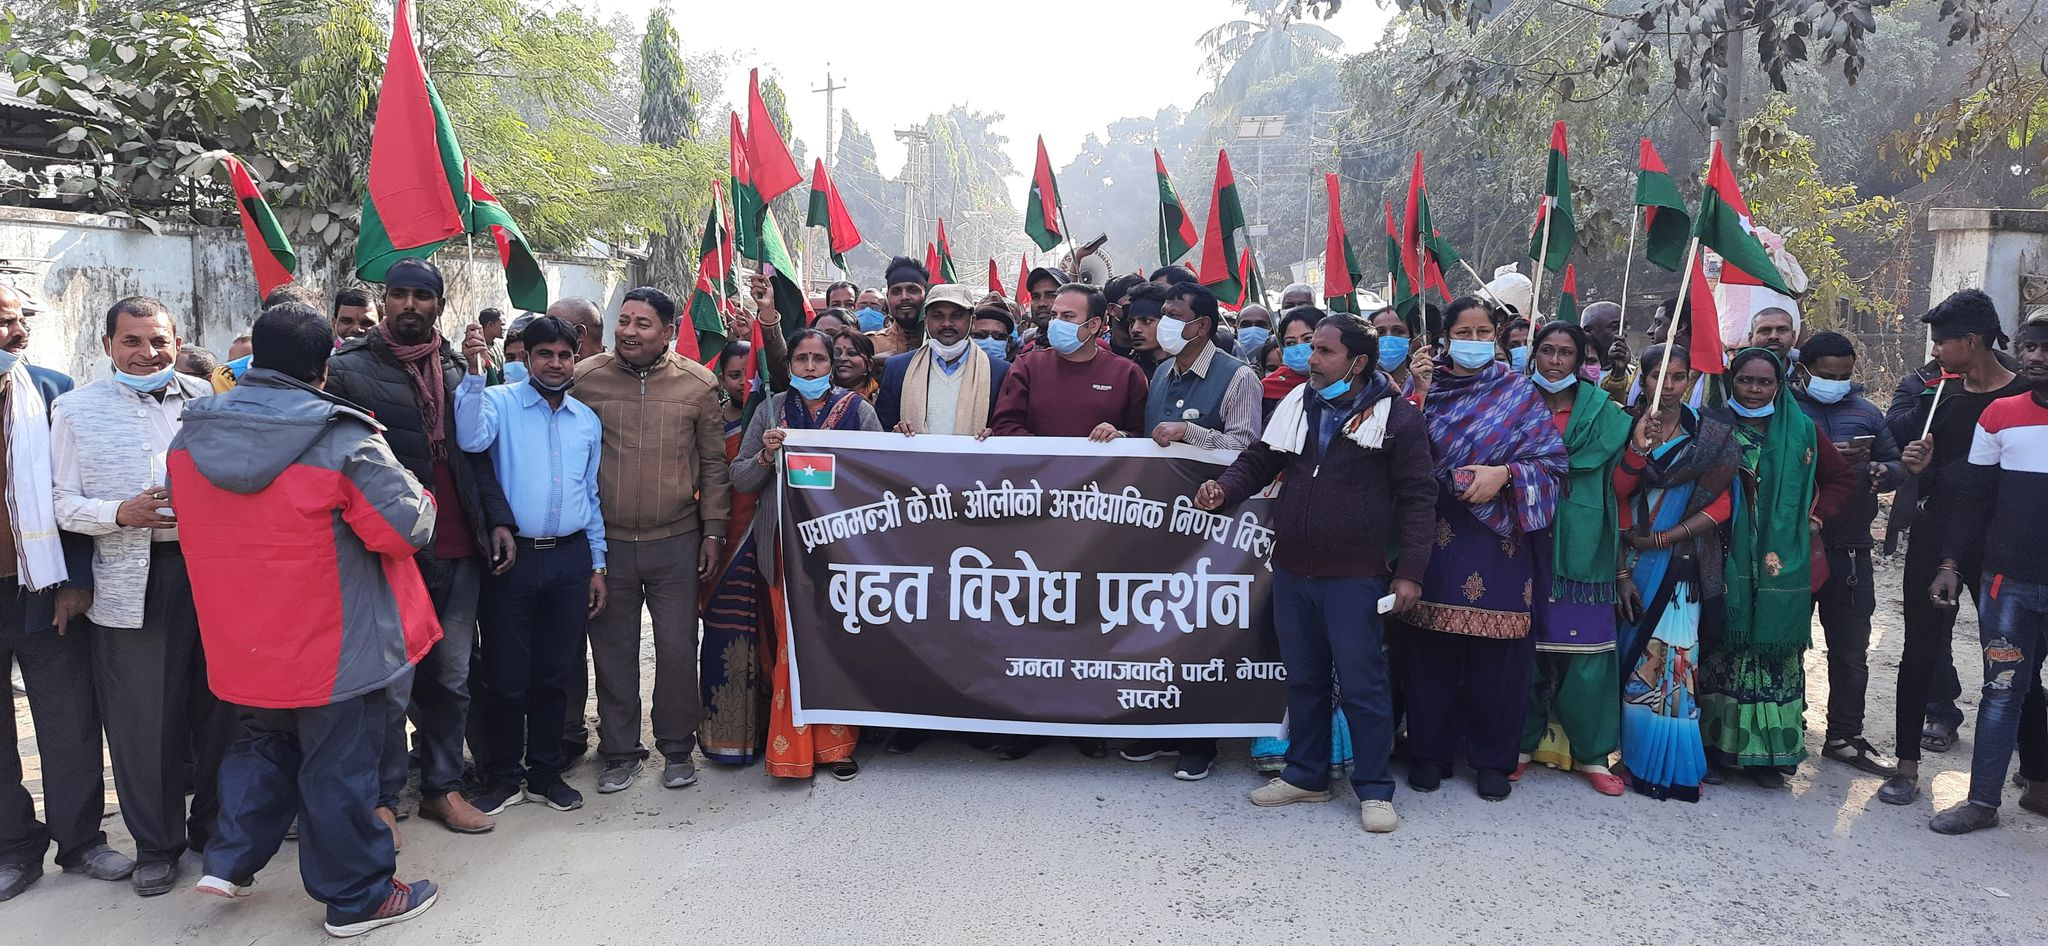 Leaders and cadres of Janata Samajwadi Party Nepal (JSPN) stage an extensive demonstration against the dissolution of the House of Representatives (HoR), in Rajbiraj Municipality of Saptari district, on Wednesday, December 23, 2020. Photo: Byas Shankar Upadhyay/THT